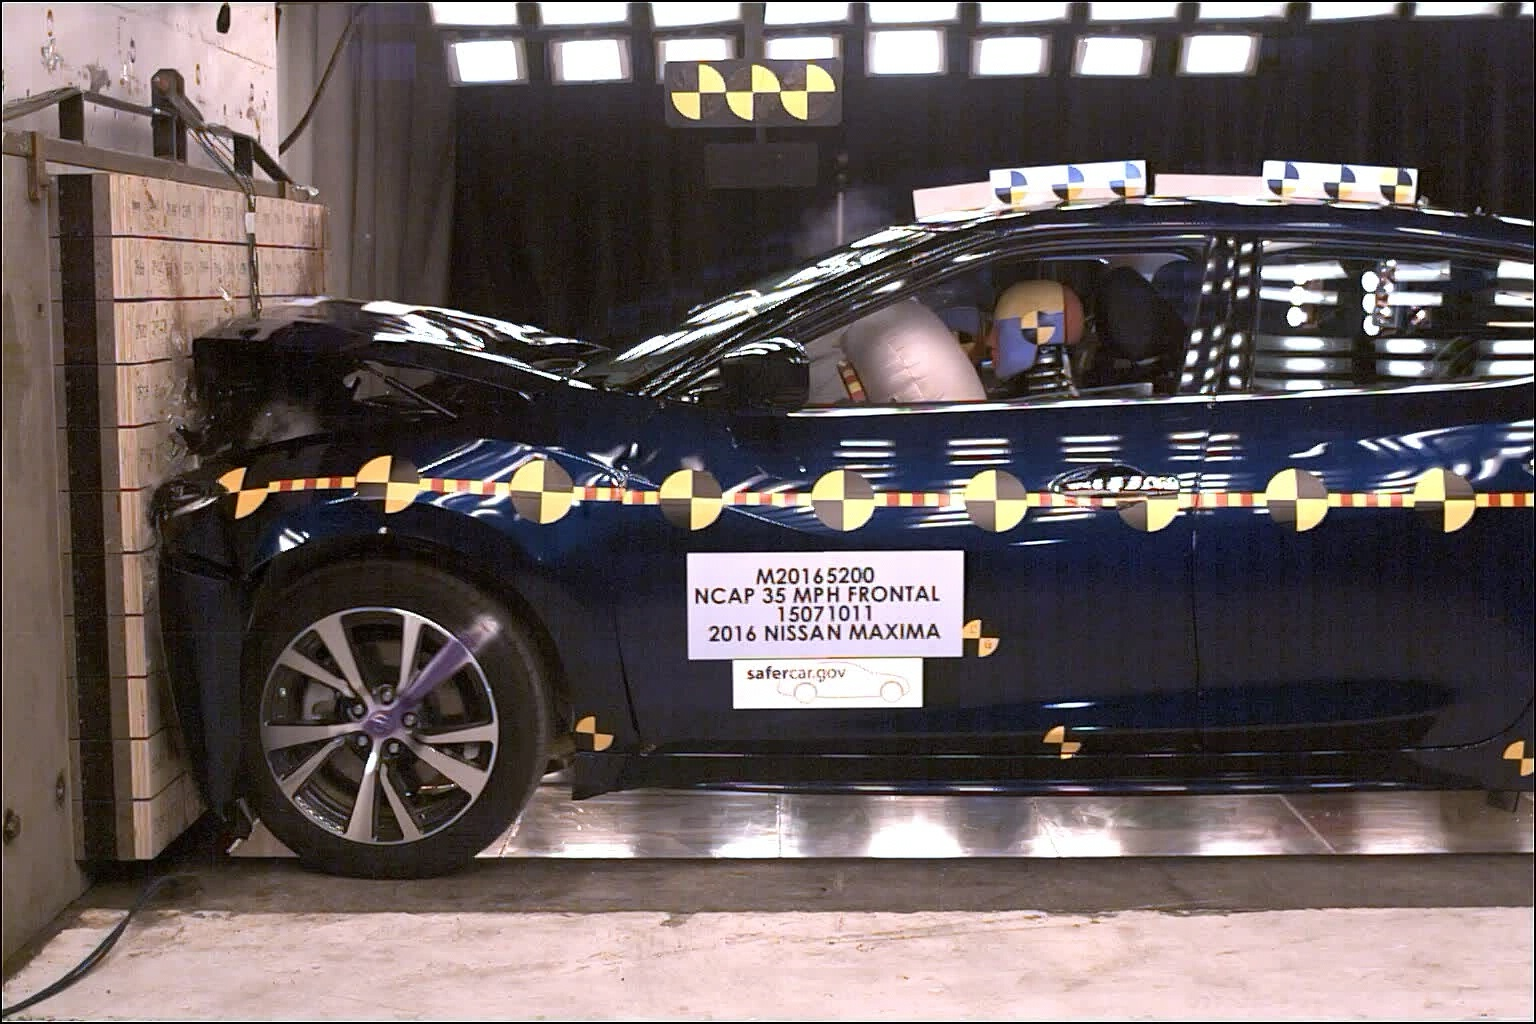 NCAP 2017 Nissan Maxima front crash test photo